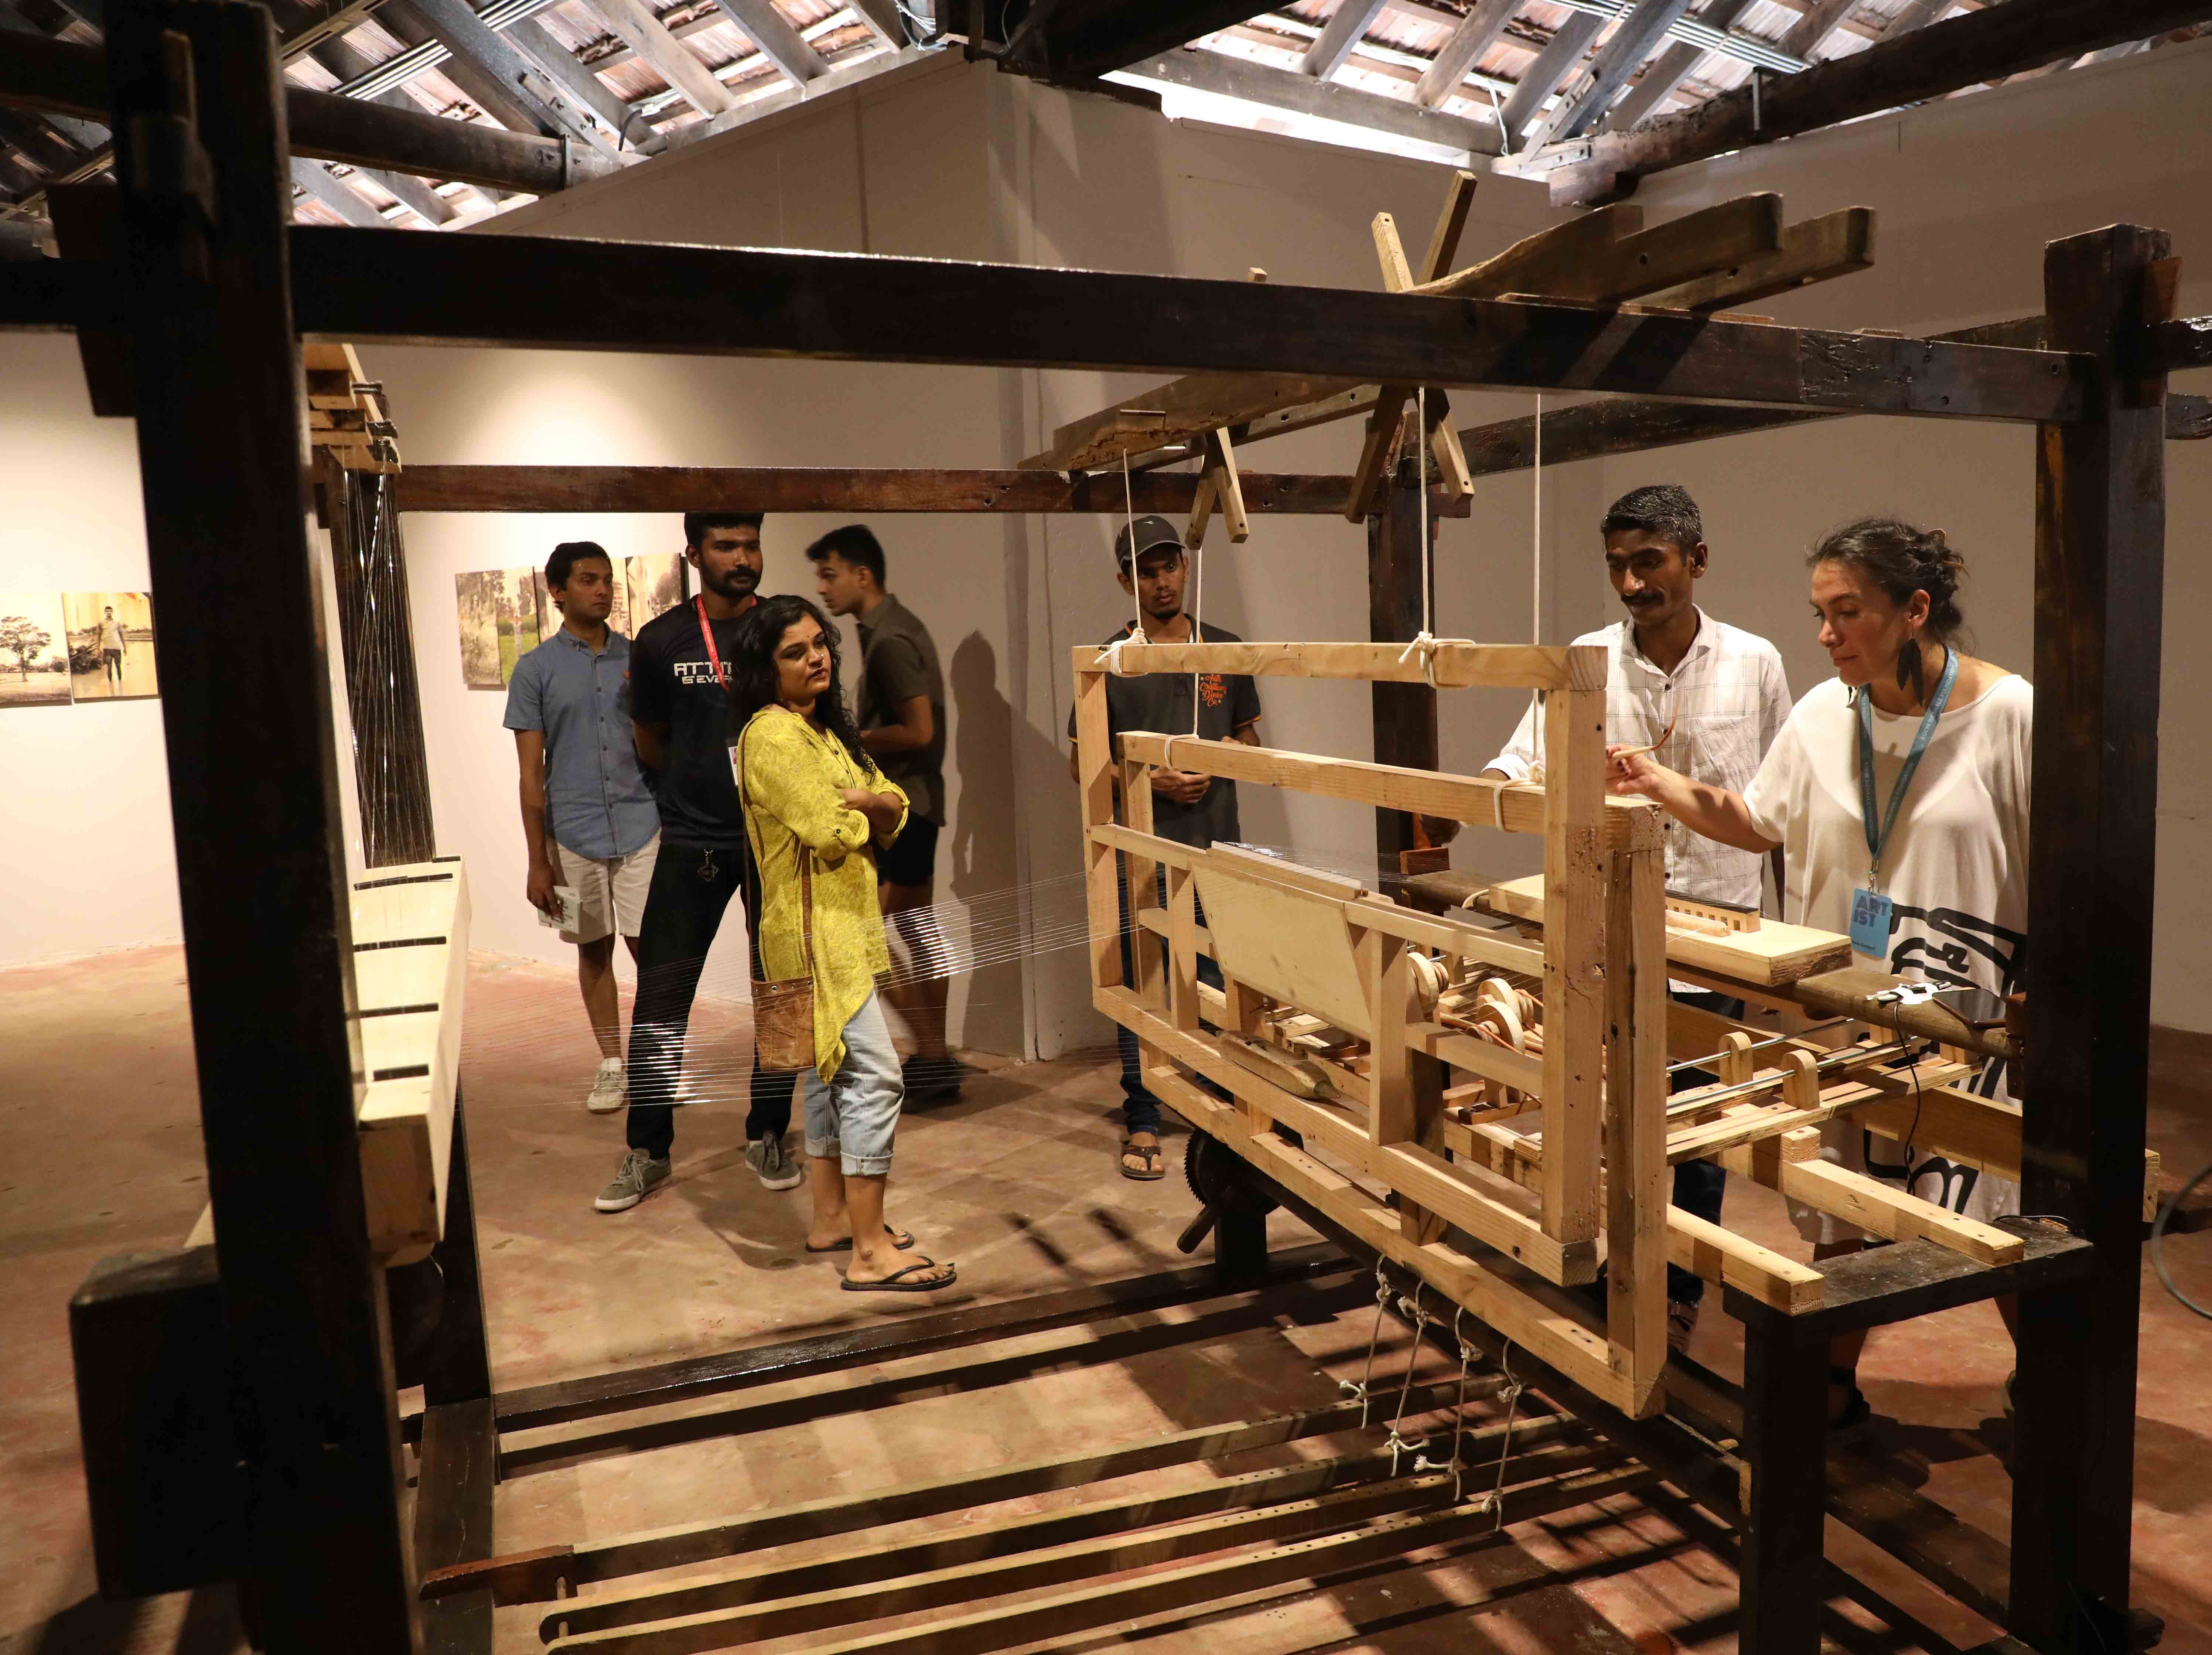 Kochi-Muziris Biennale Drops Inquiry Into Allegation of Sexual Misconduct Against Cofounder